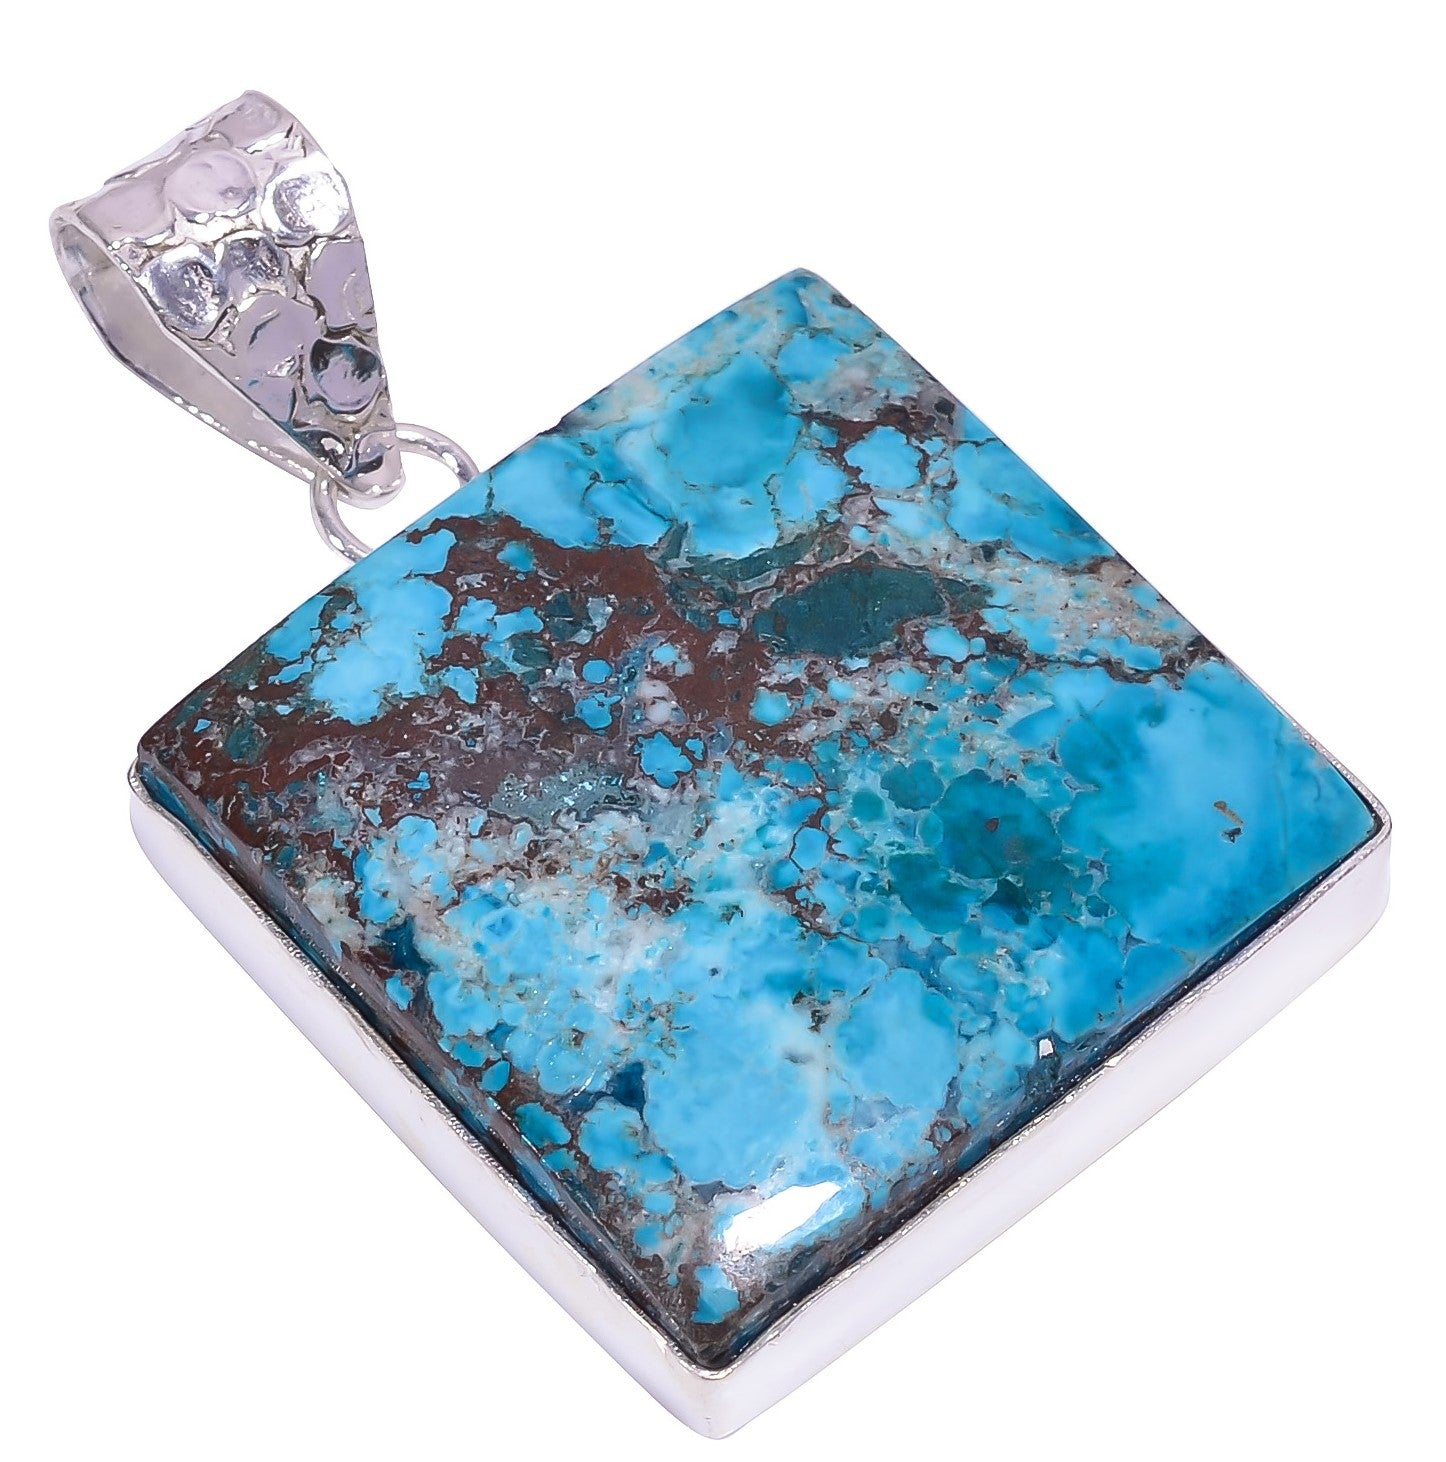 Bullahshah Ethnic Style Sterling Silver Overlay Square Shaped Tibetan Turquoise Gemstone Pendant, Natural Stone Handmade Necklace for Women with Rhodium Plated Chain, NLG-1613